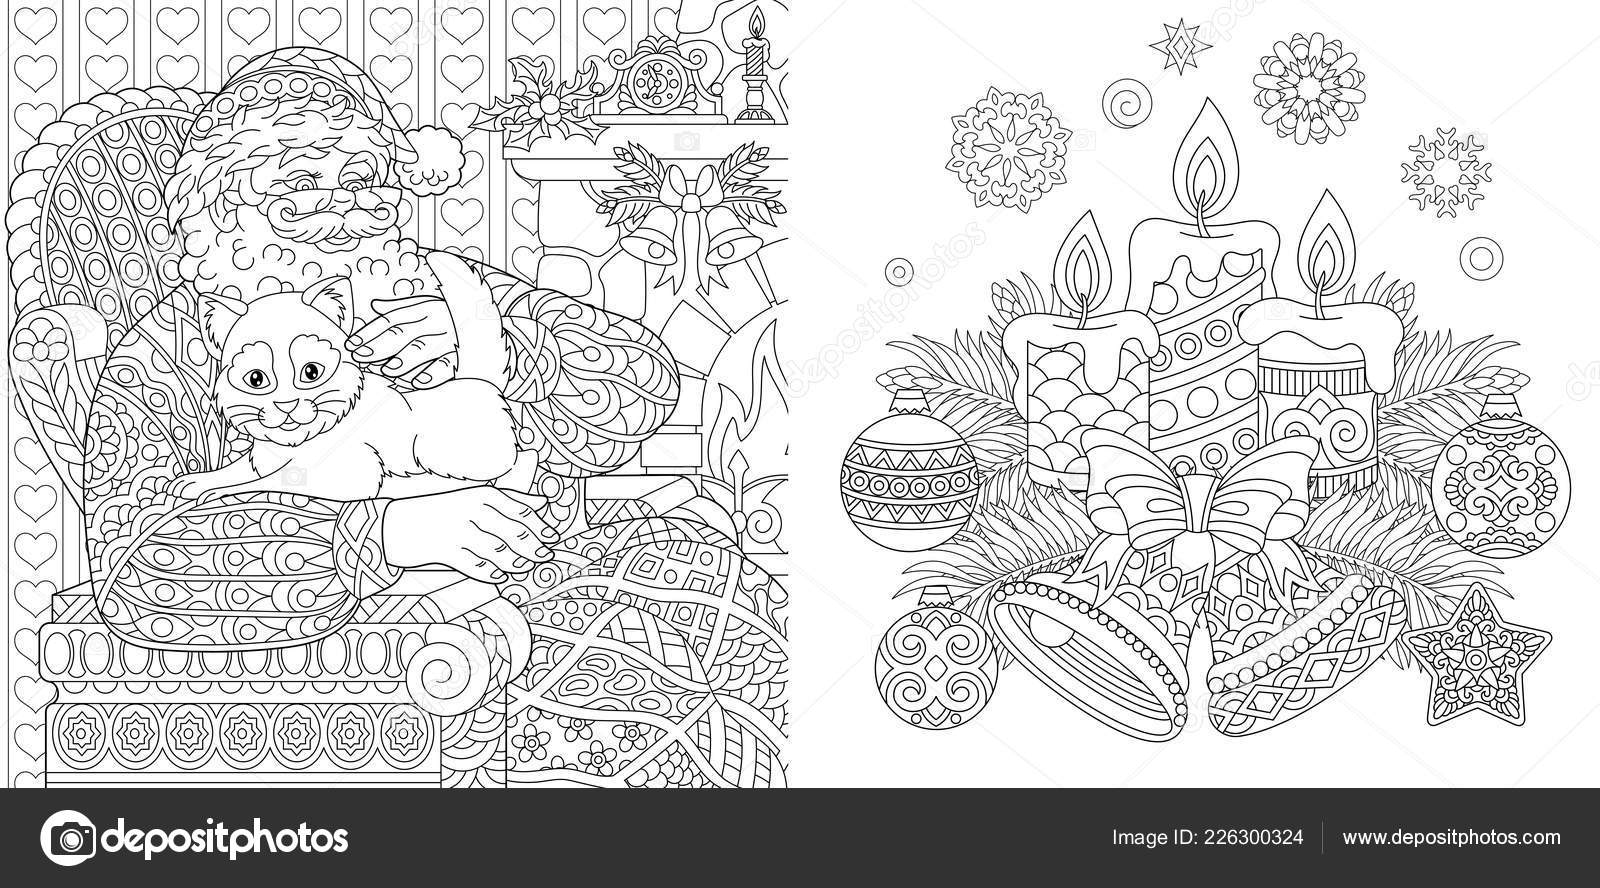 Christmas Colouring Pages Coloring Book Adults Santa Claus